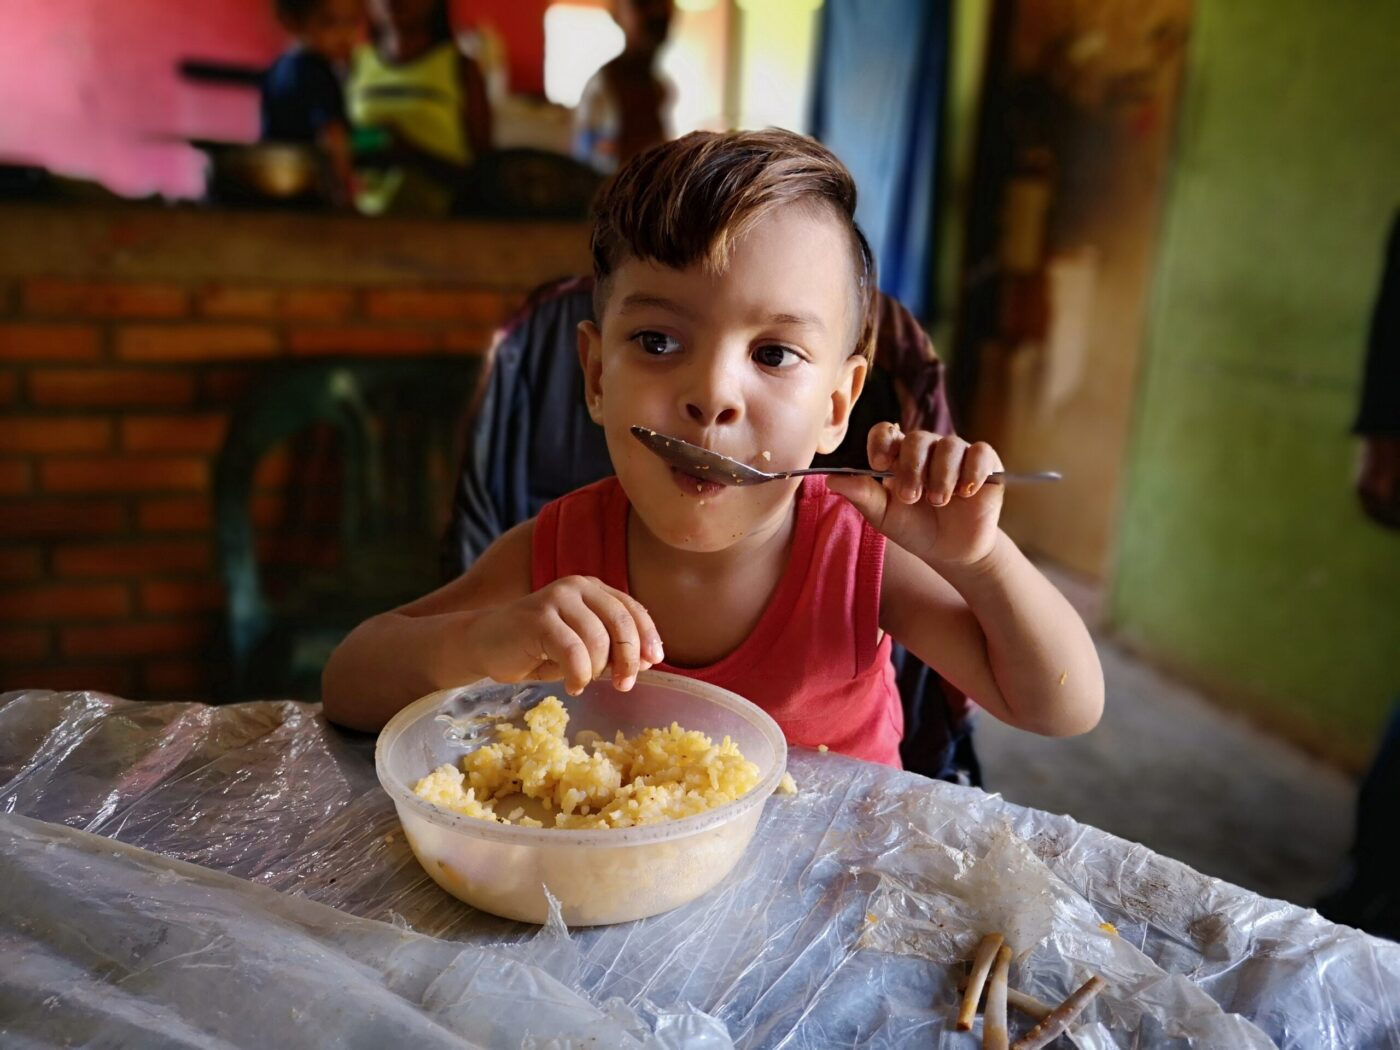 little boy eating food at table